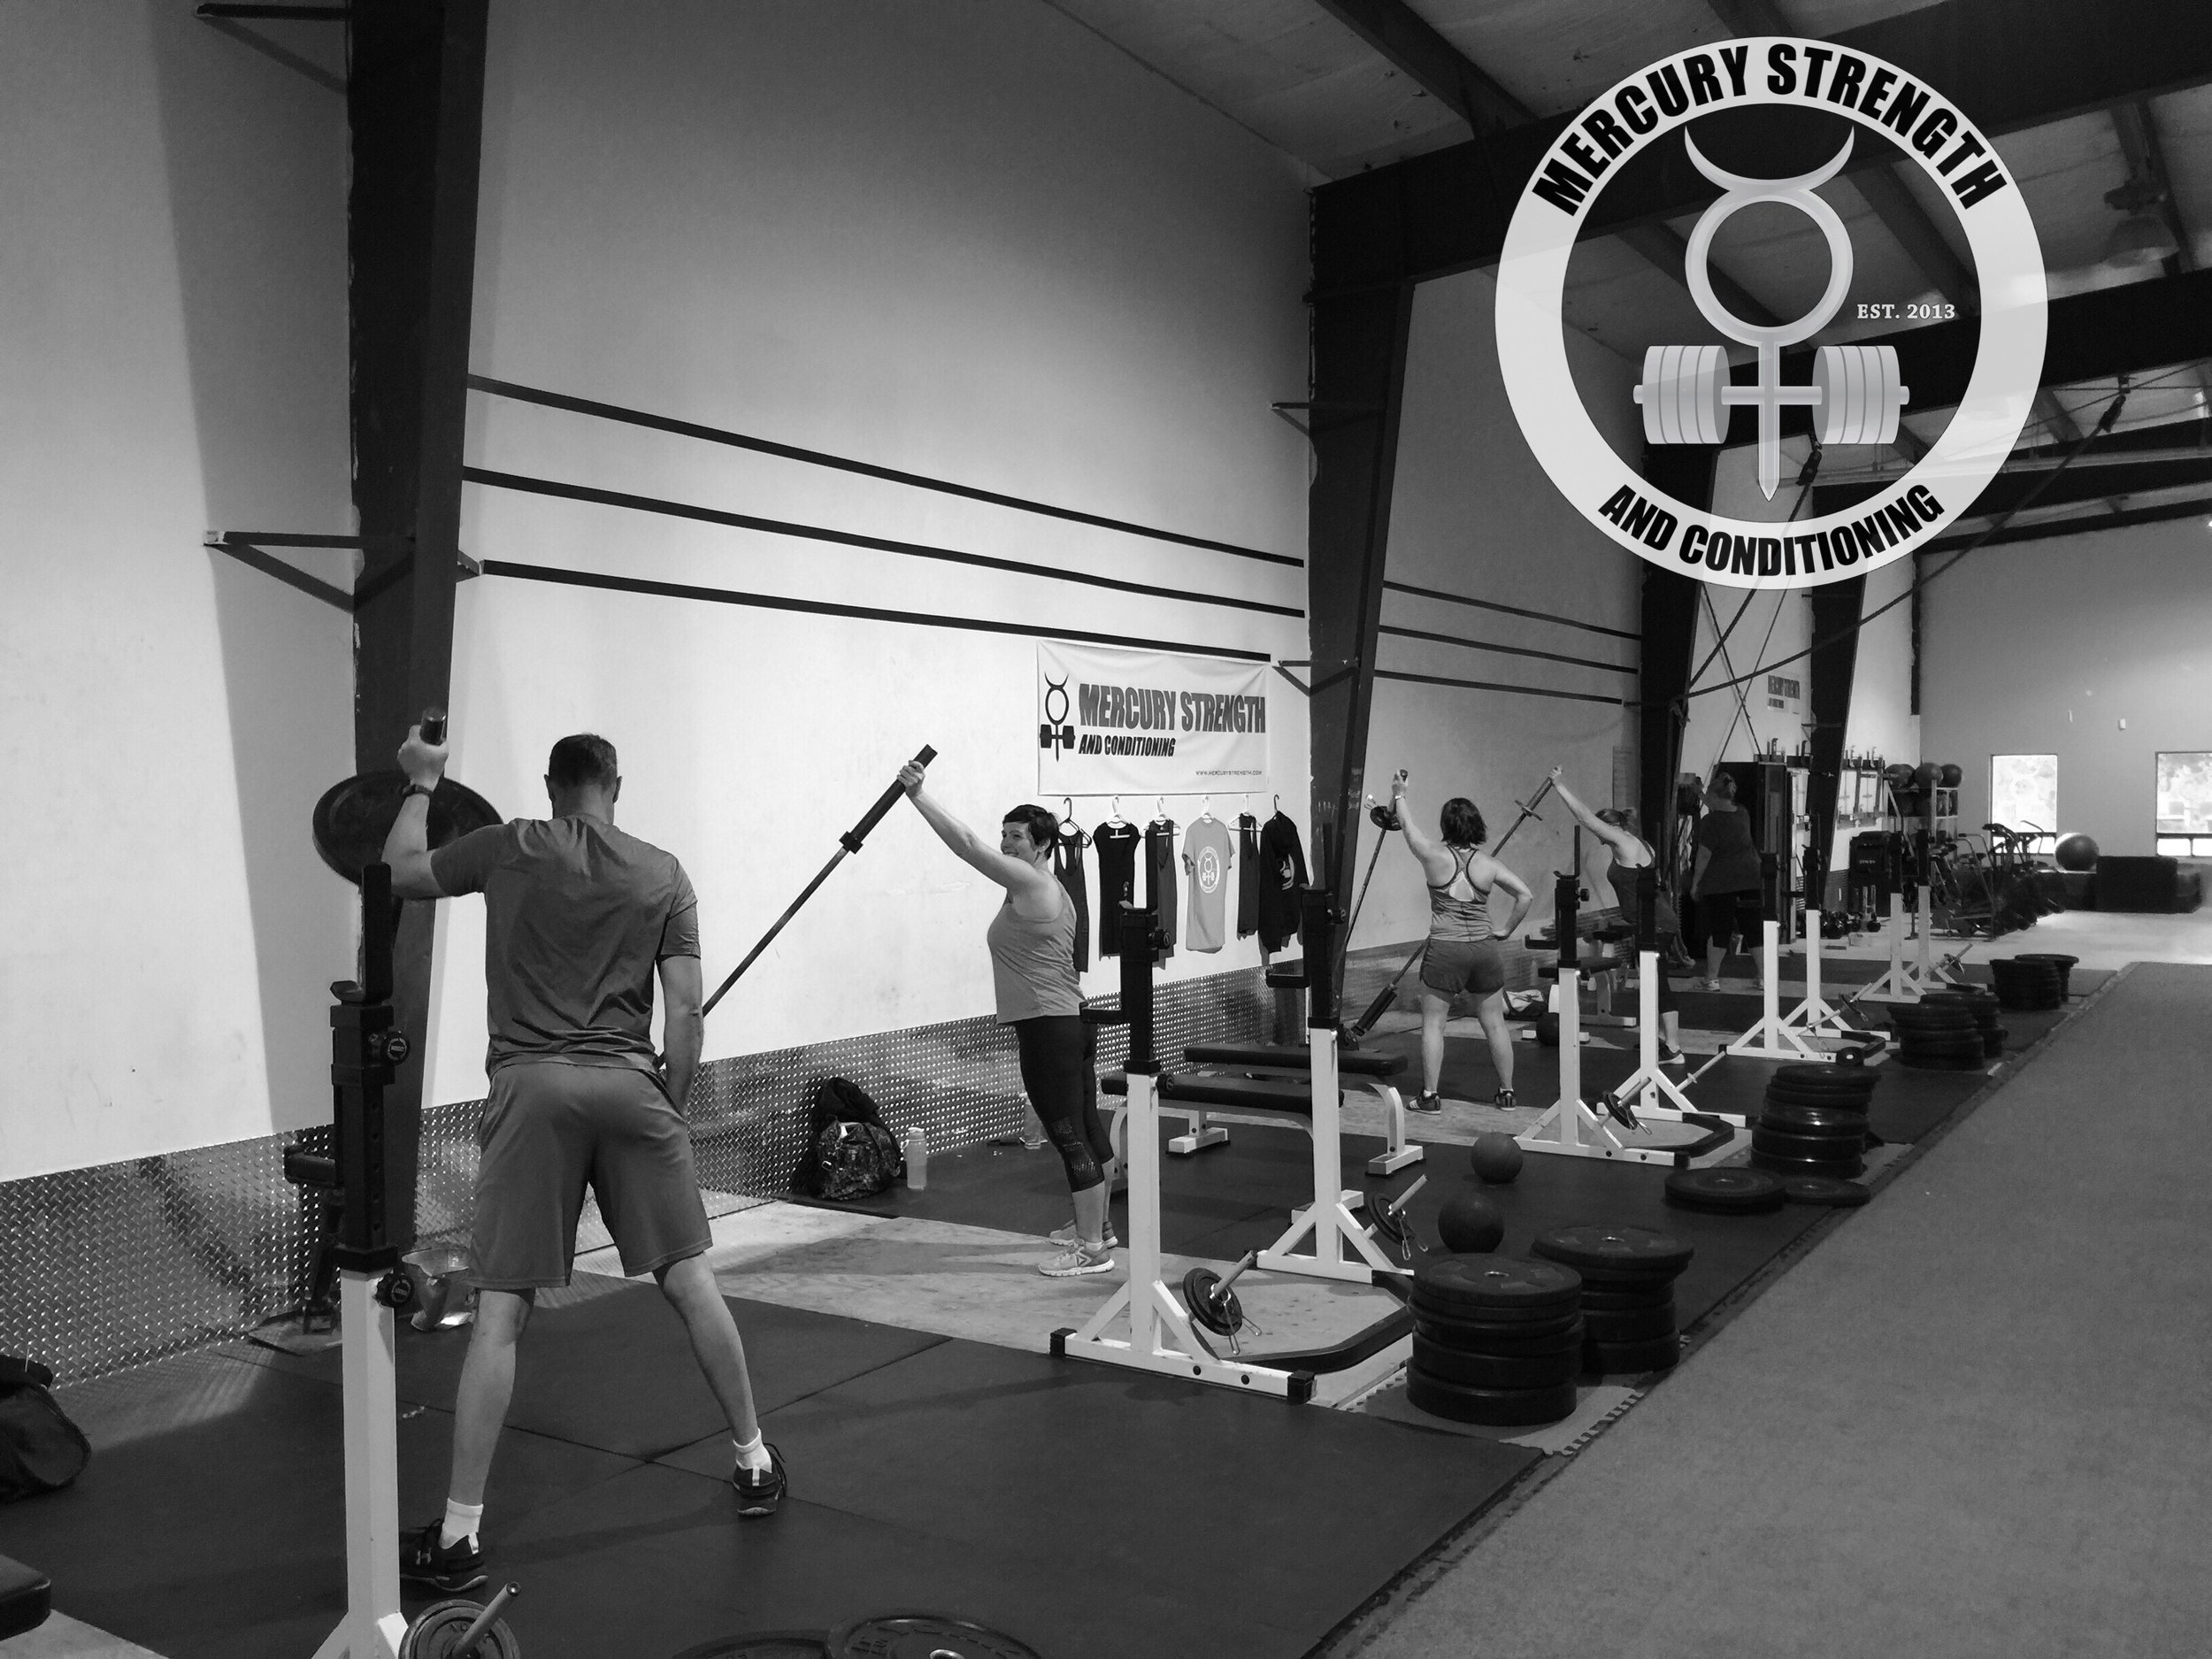 The early morning crew with some landmine presses